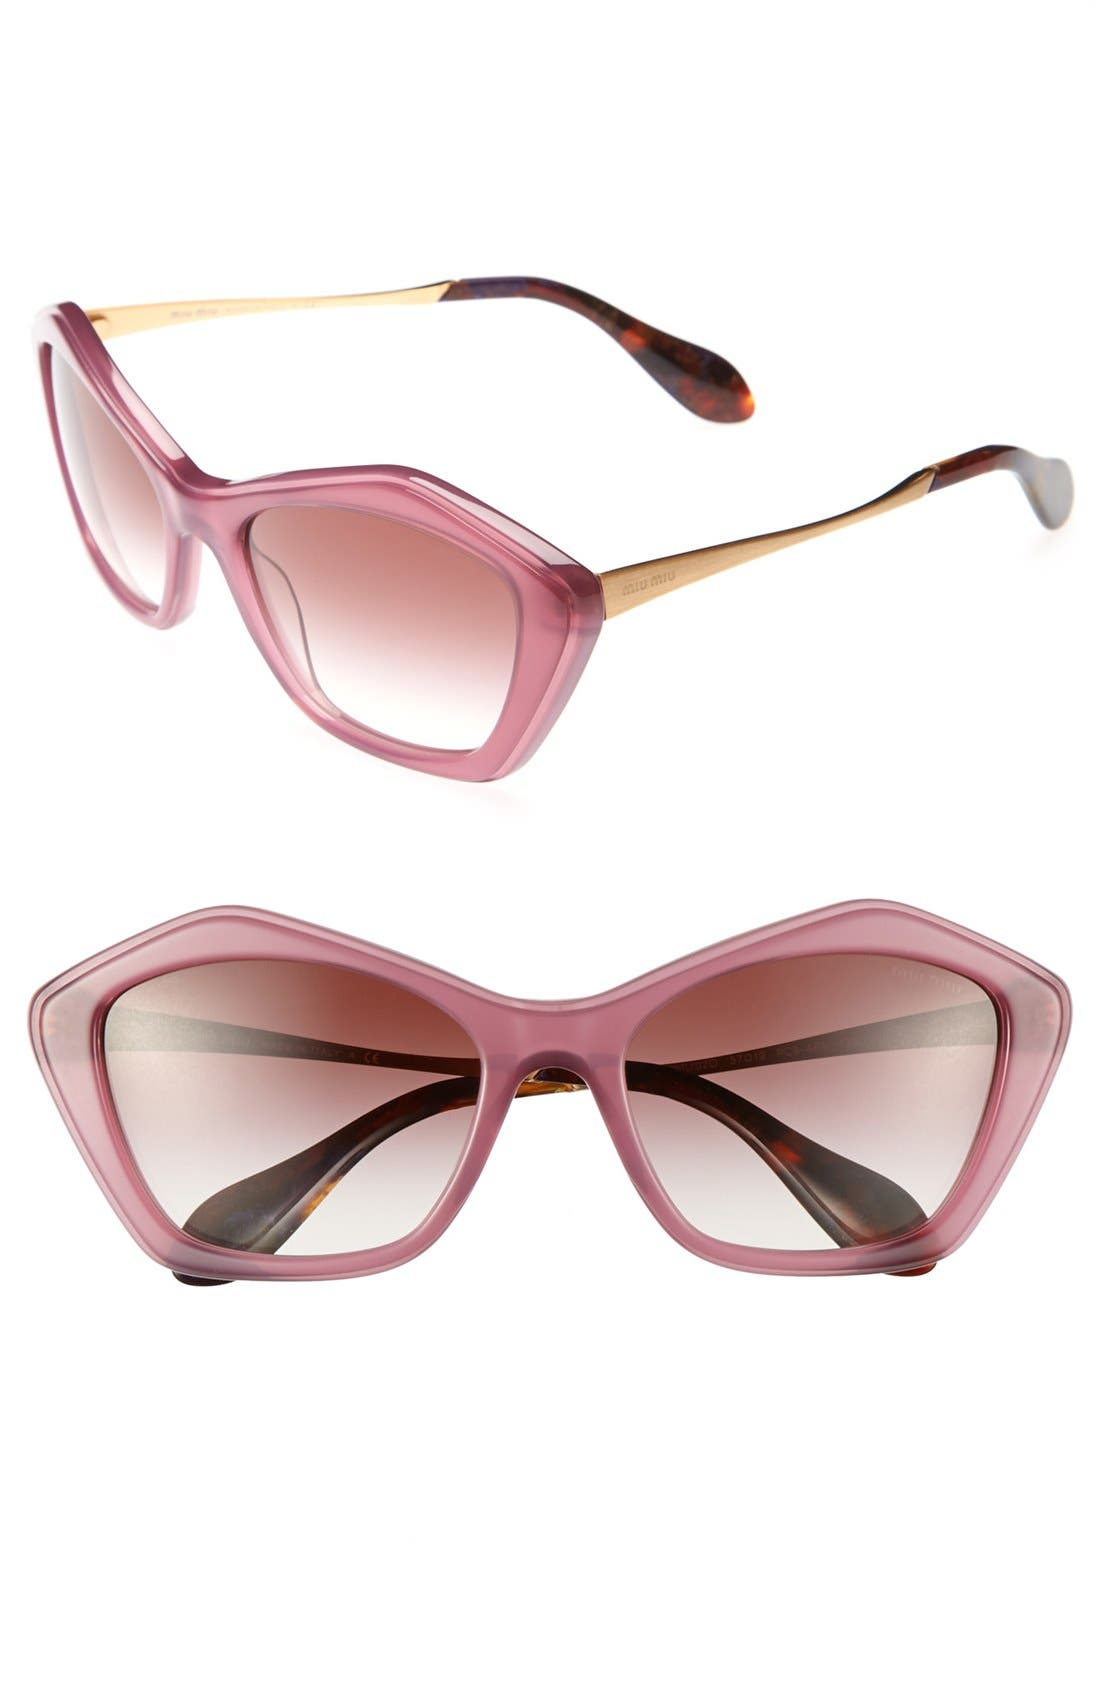 Main Image - Miu Miu Angled 57mm Sunglasses